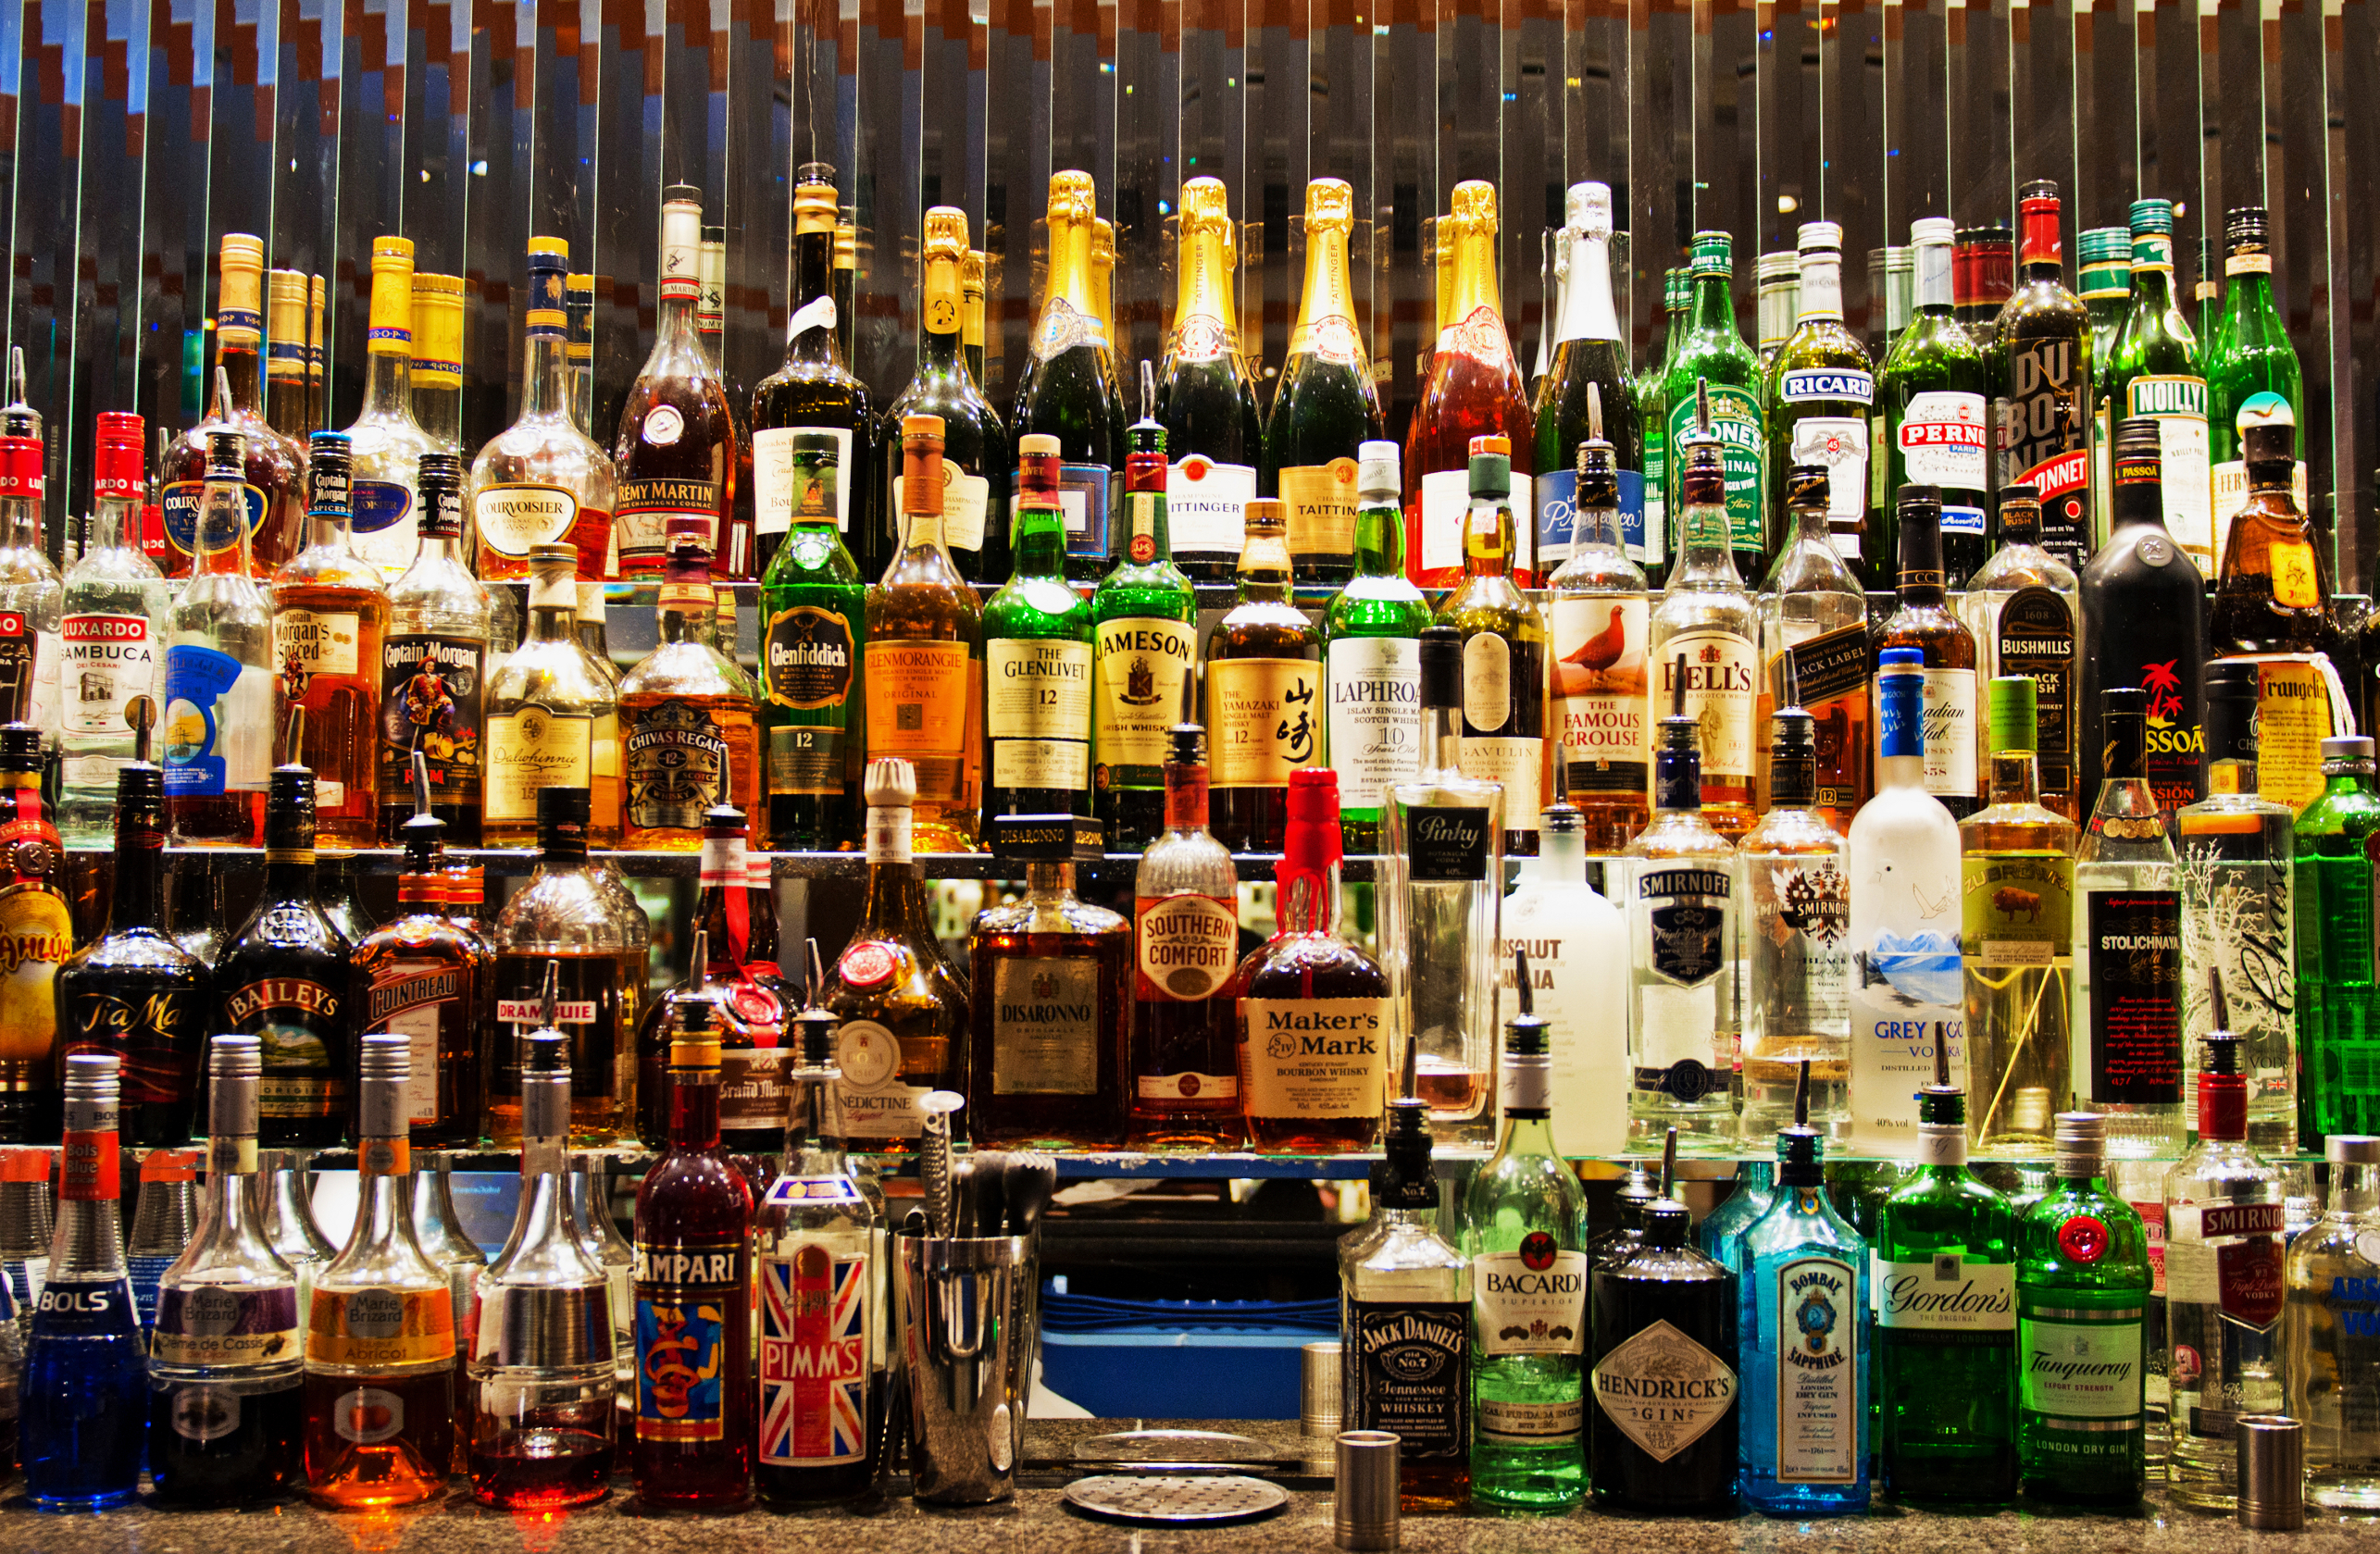 LONDON - JANUARY 26, 2013: liquor bottles at the mask bar inside Strand Palace Hotel in London, UK on January 26, 2013.